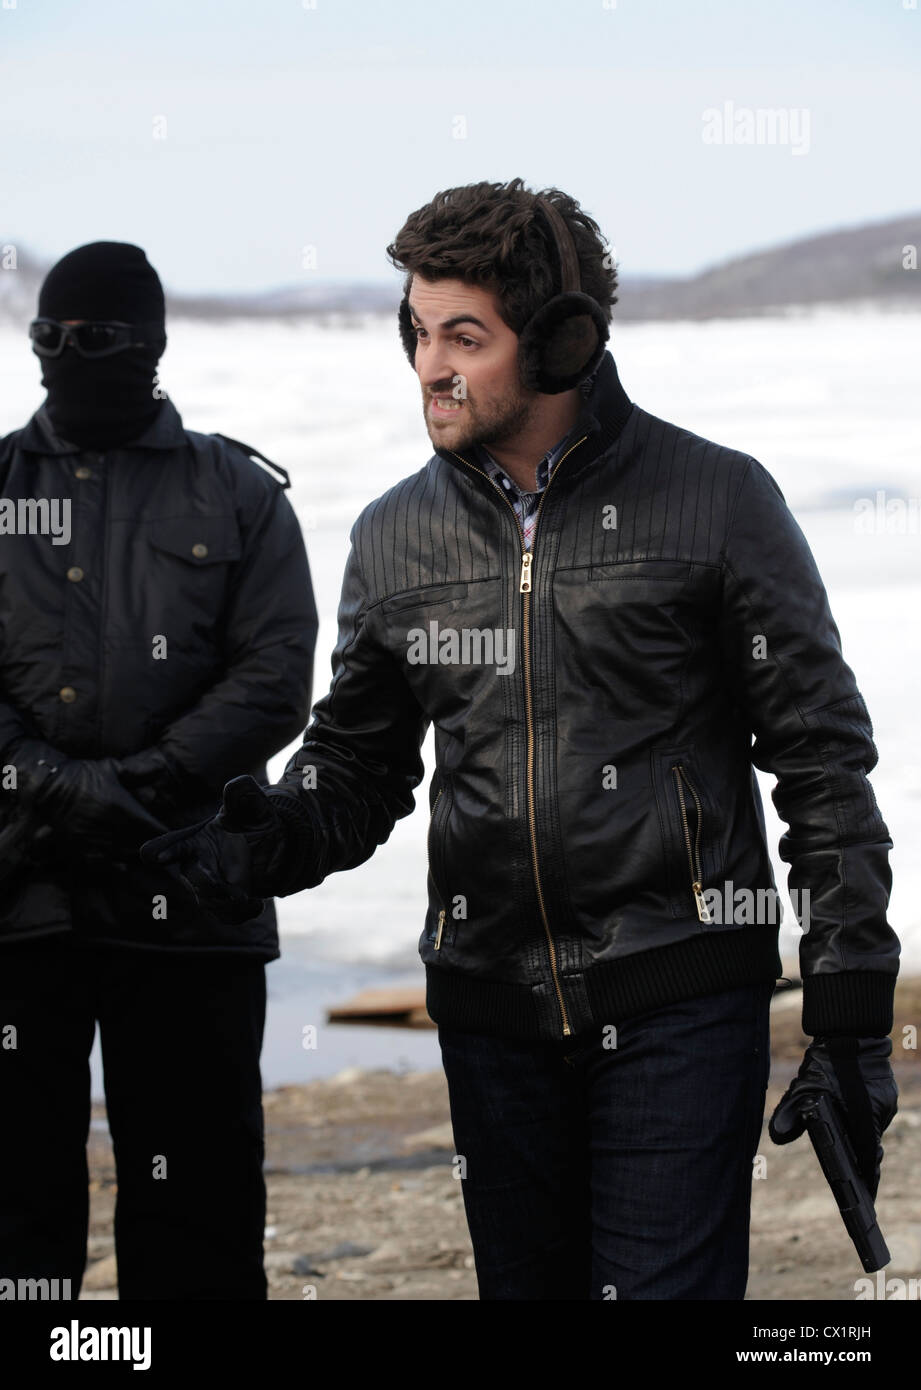 ITAR-TASS: MURMANSK REGION, RUSSIA. MAY 17, 2011. Bollywood actor Neil Nitin Mukesh on location for a new remake - Stock Image